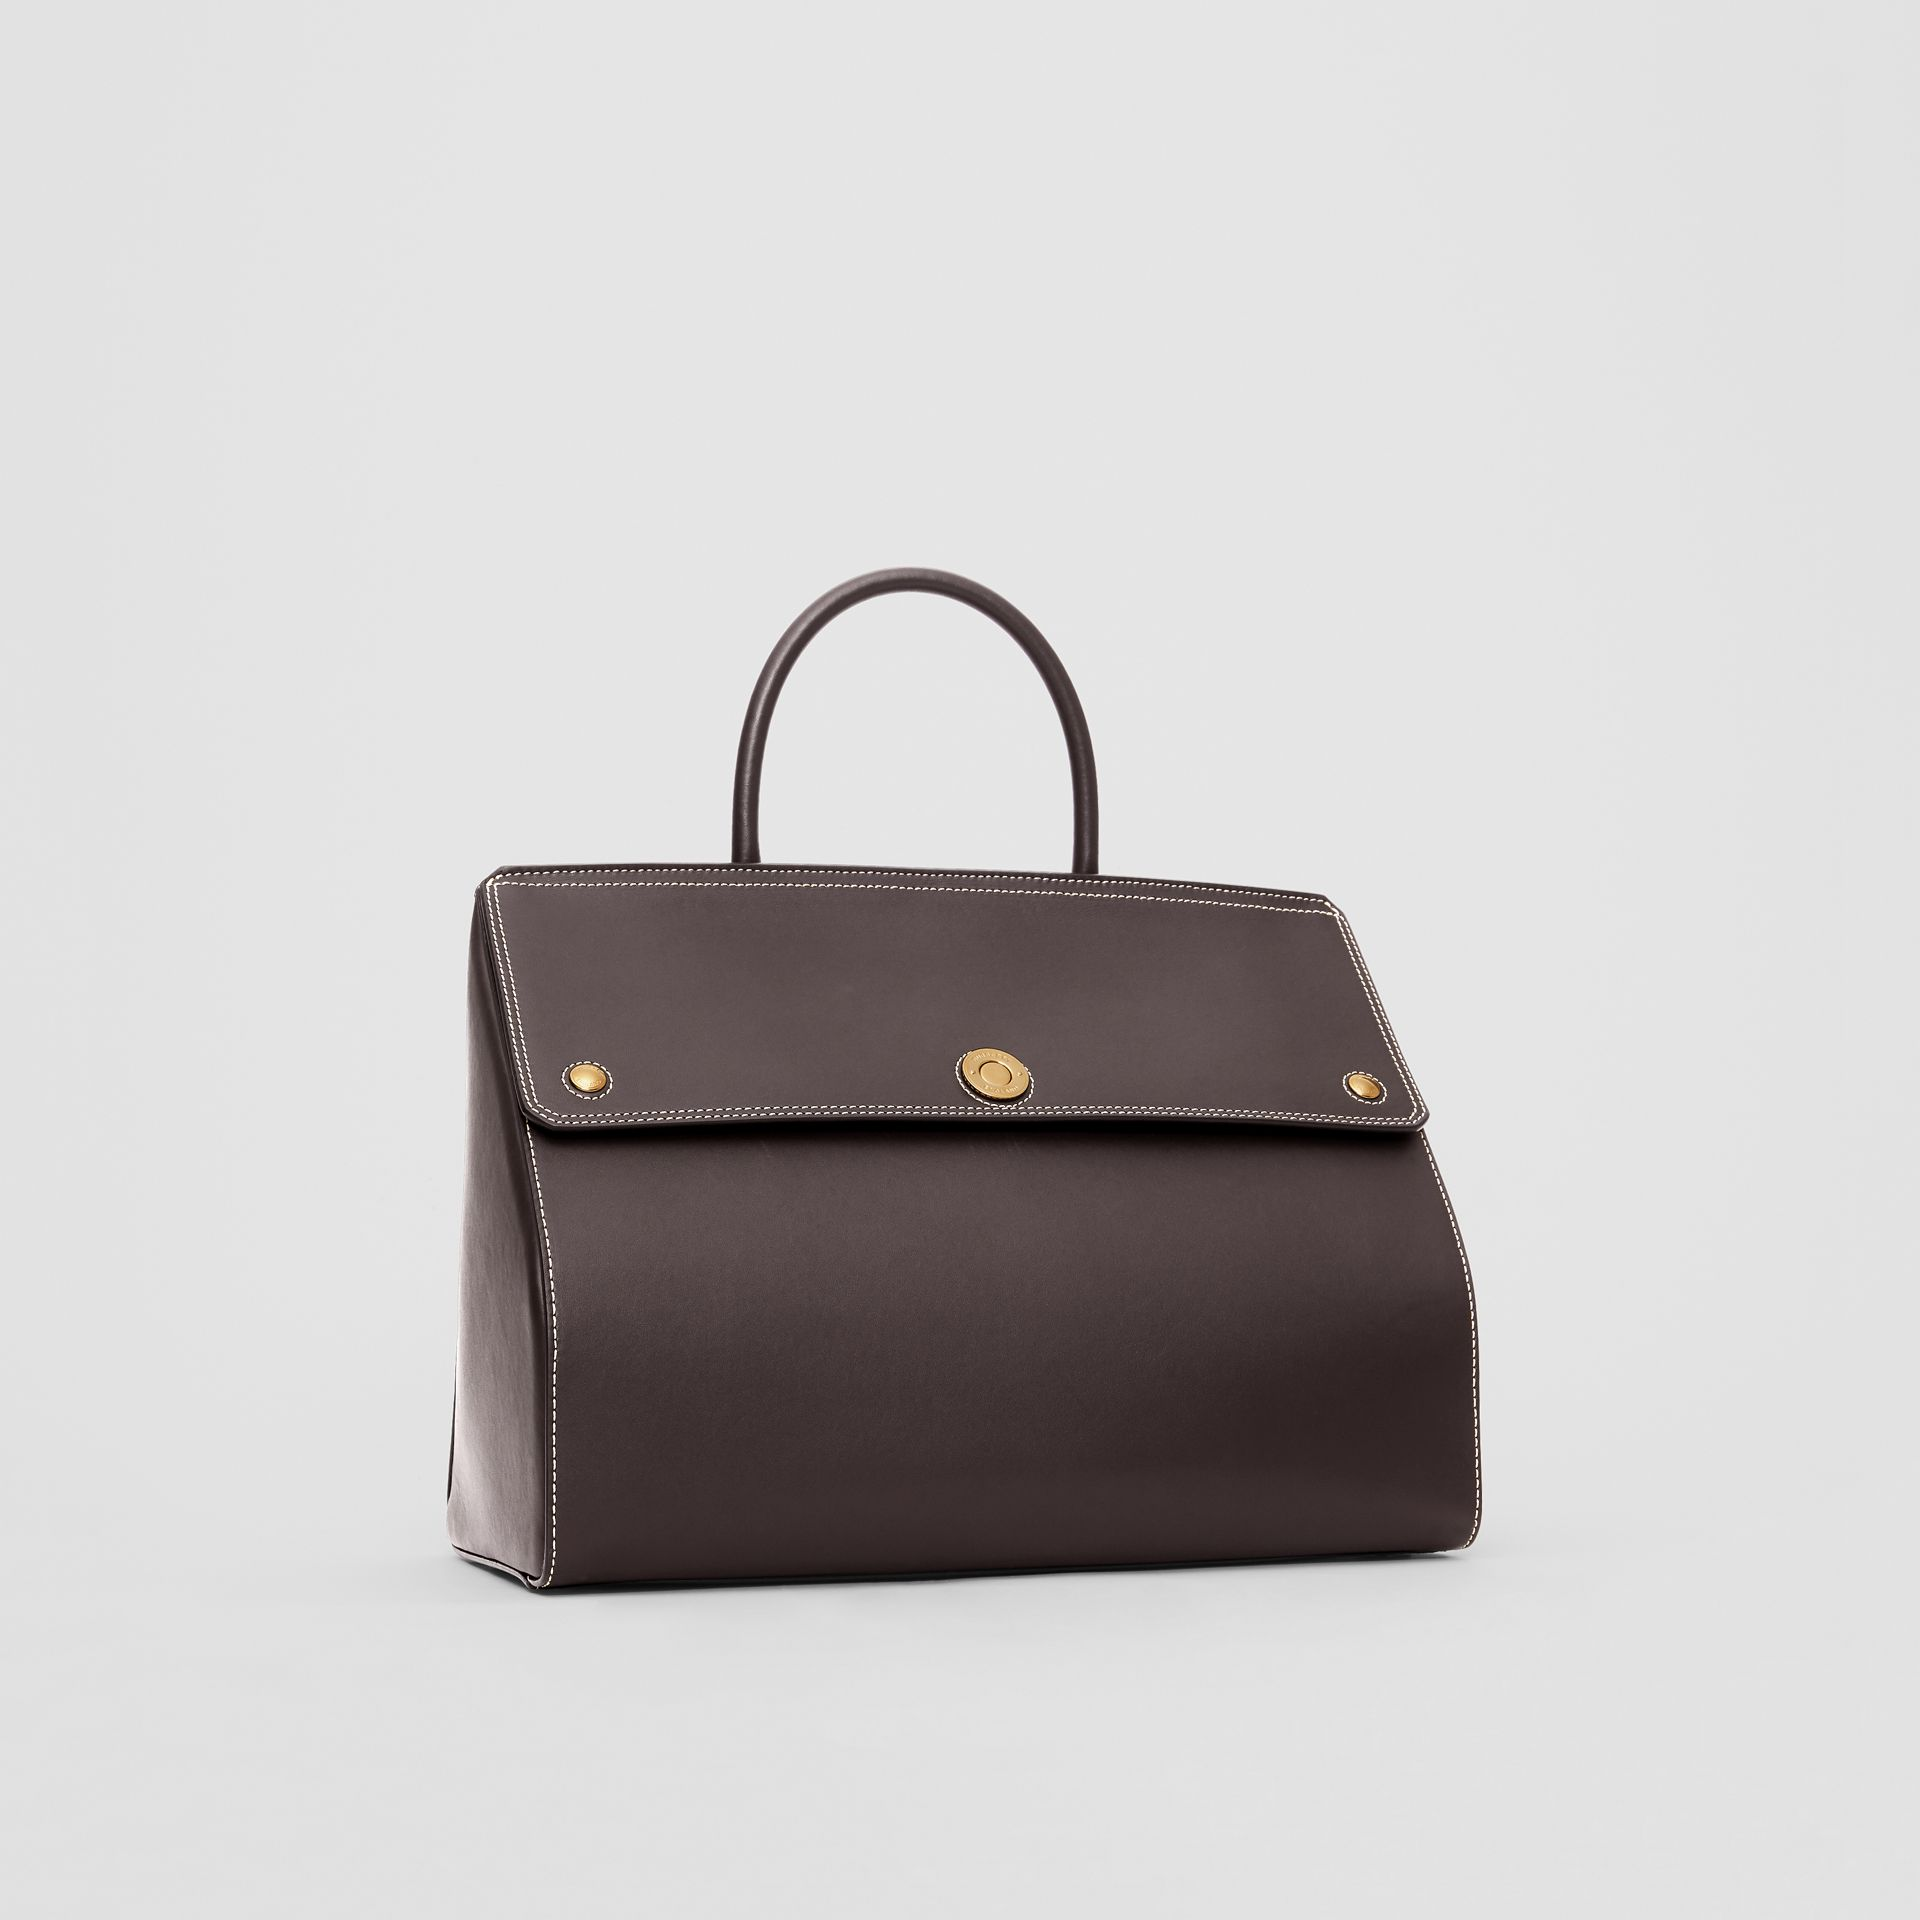 Medium Leather Elizabeth Bag in Coffee - Women | Burberry United States - gallery image 6